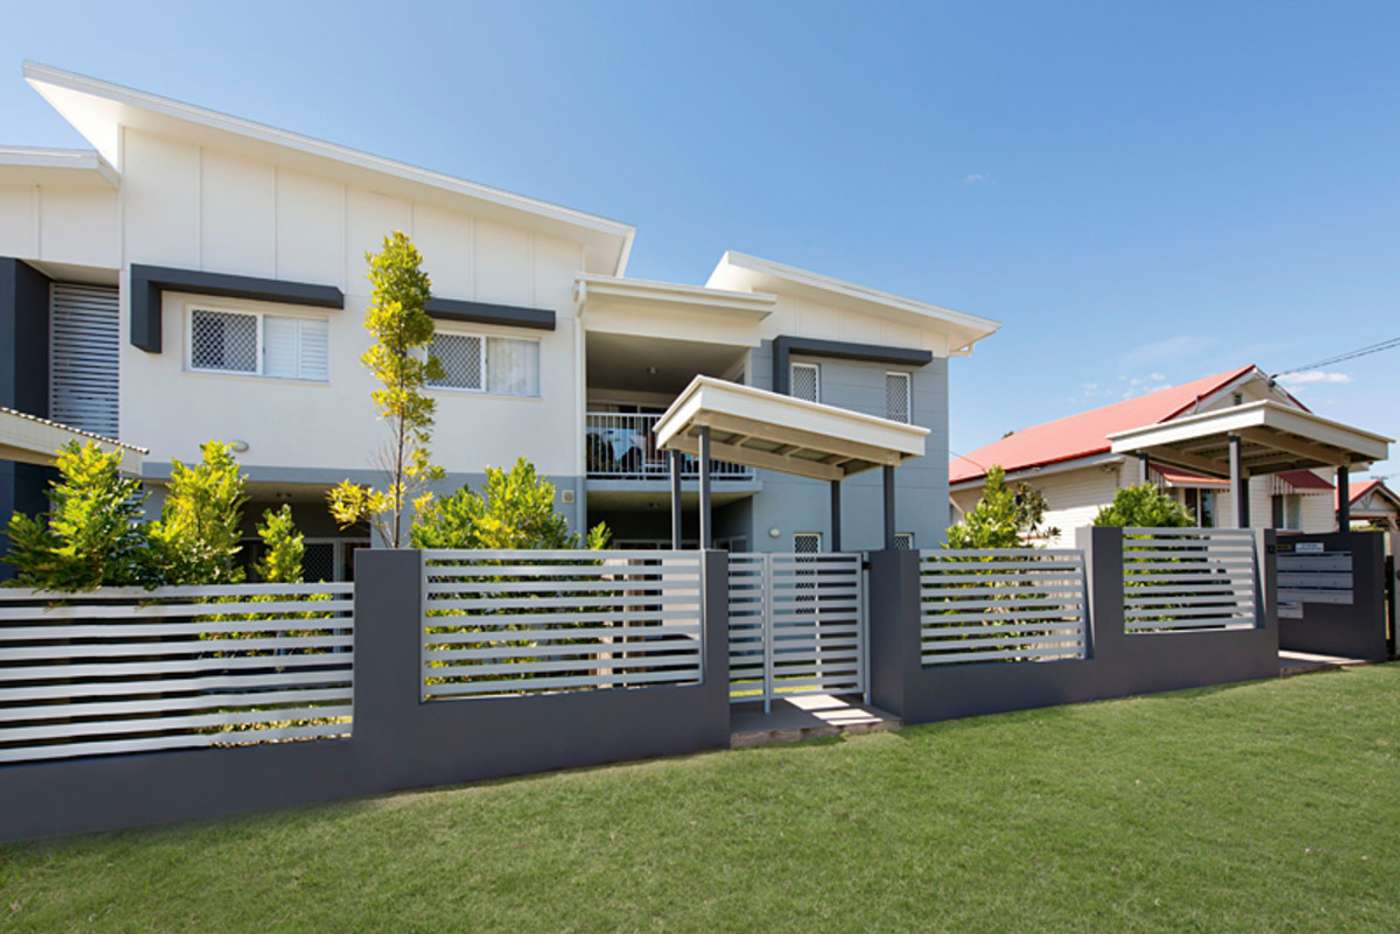 Main view of Homely unit listing, 11/22 Birdwood Street, Zillmere QLD 4034